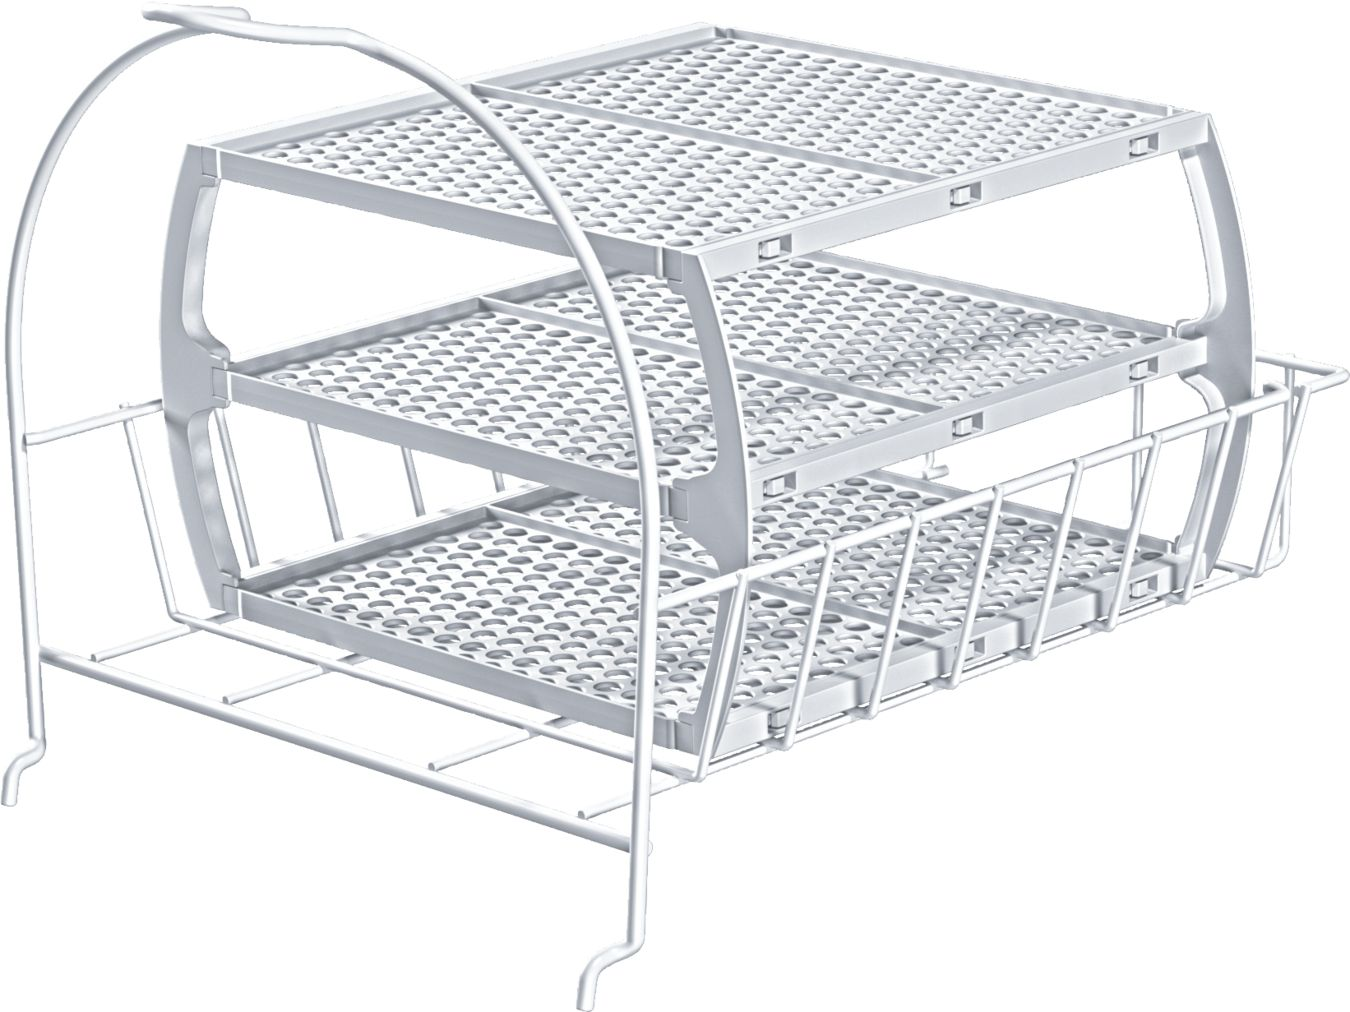 WMZ20600Accessories Laundry CareDrying Rack for 24